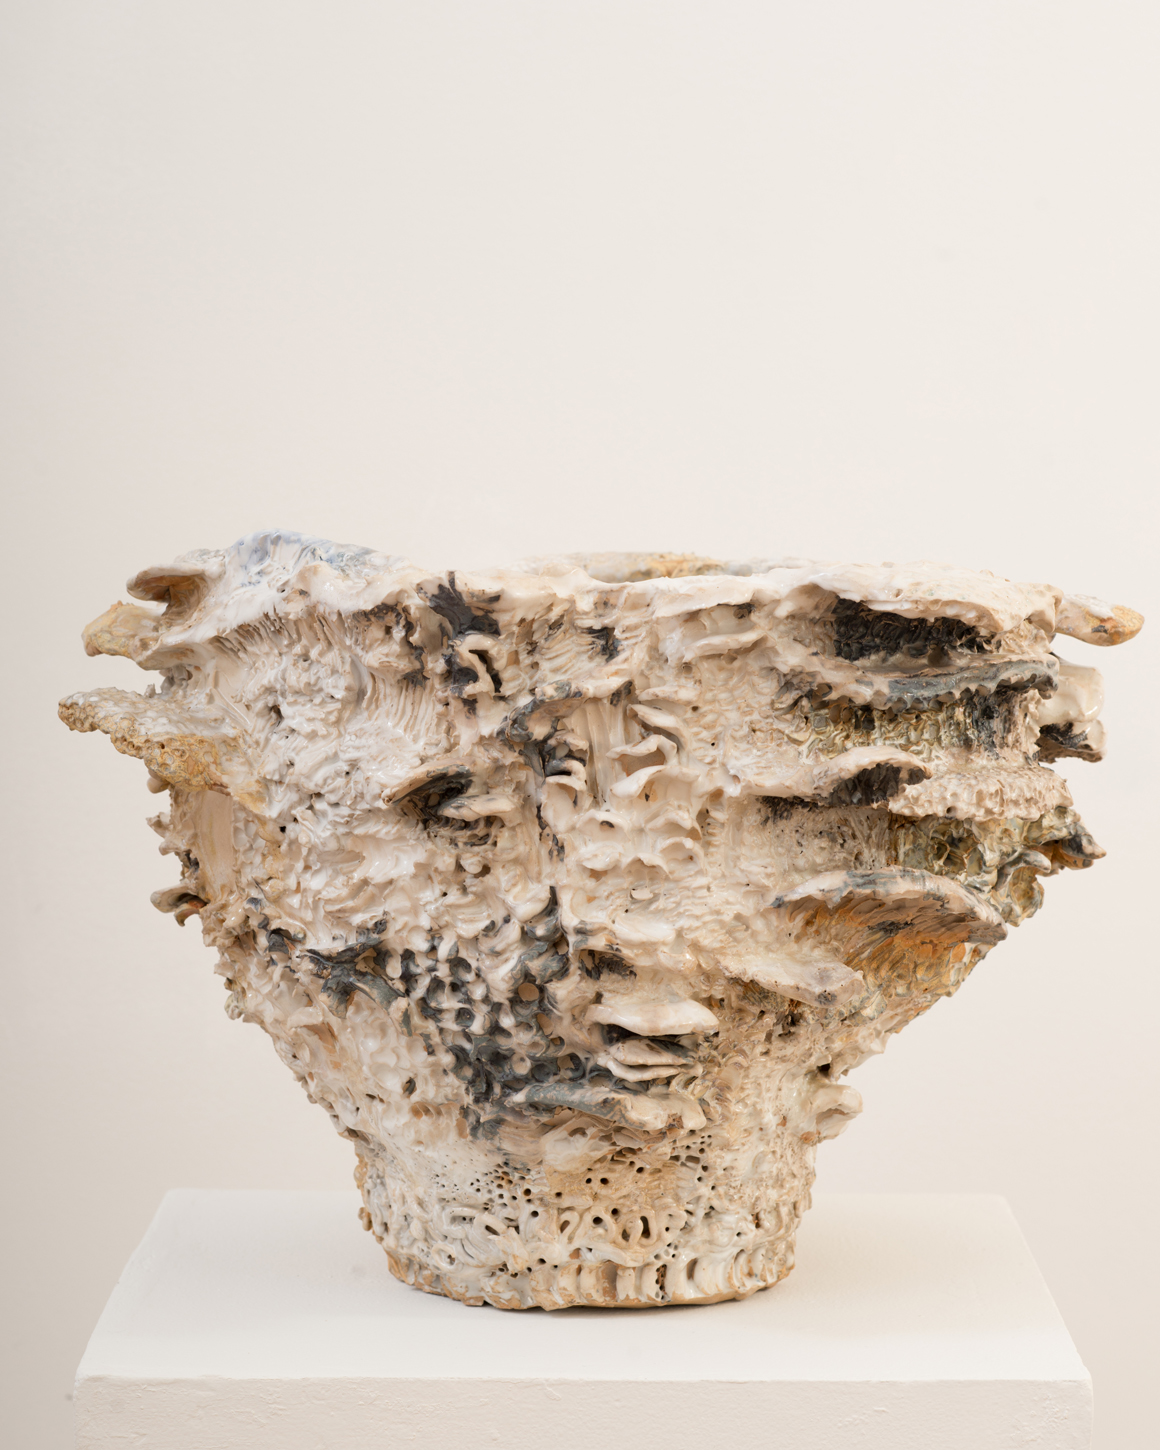 """<p><span class=""""name"""">Jasmine Little</span><br><em>White Mushroom</em><span class='media'>Stoneware and glaze</span>12 x 16 x 16 in (30.5 x 40.6 x 40.6 cm)<br>2018<br><a class='inquire' href='mailto:info@gildargallery.com?subject=Artwork Inquiry JLIT0017&body=I am interested in finding out more about White Mushroom by Jasmine Little'>Inquire</a></p>"""